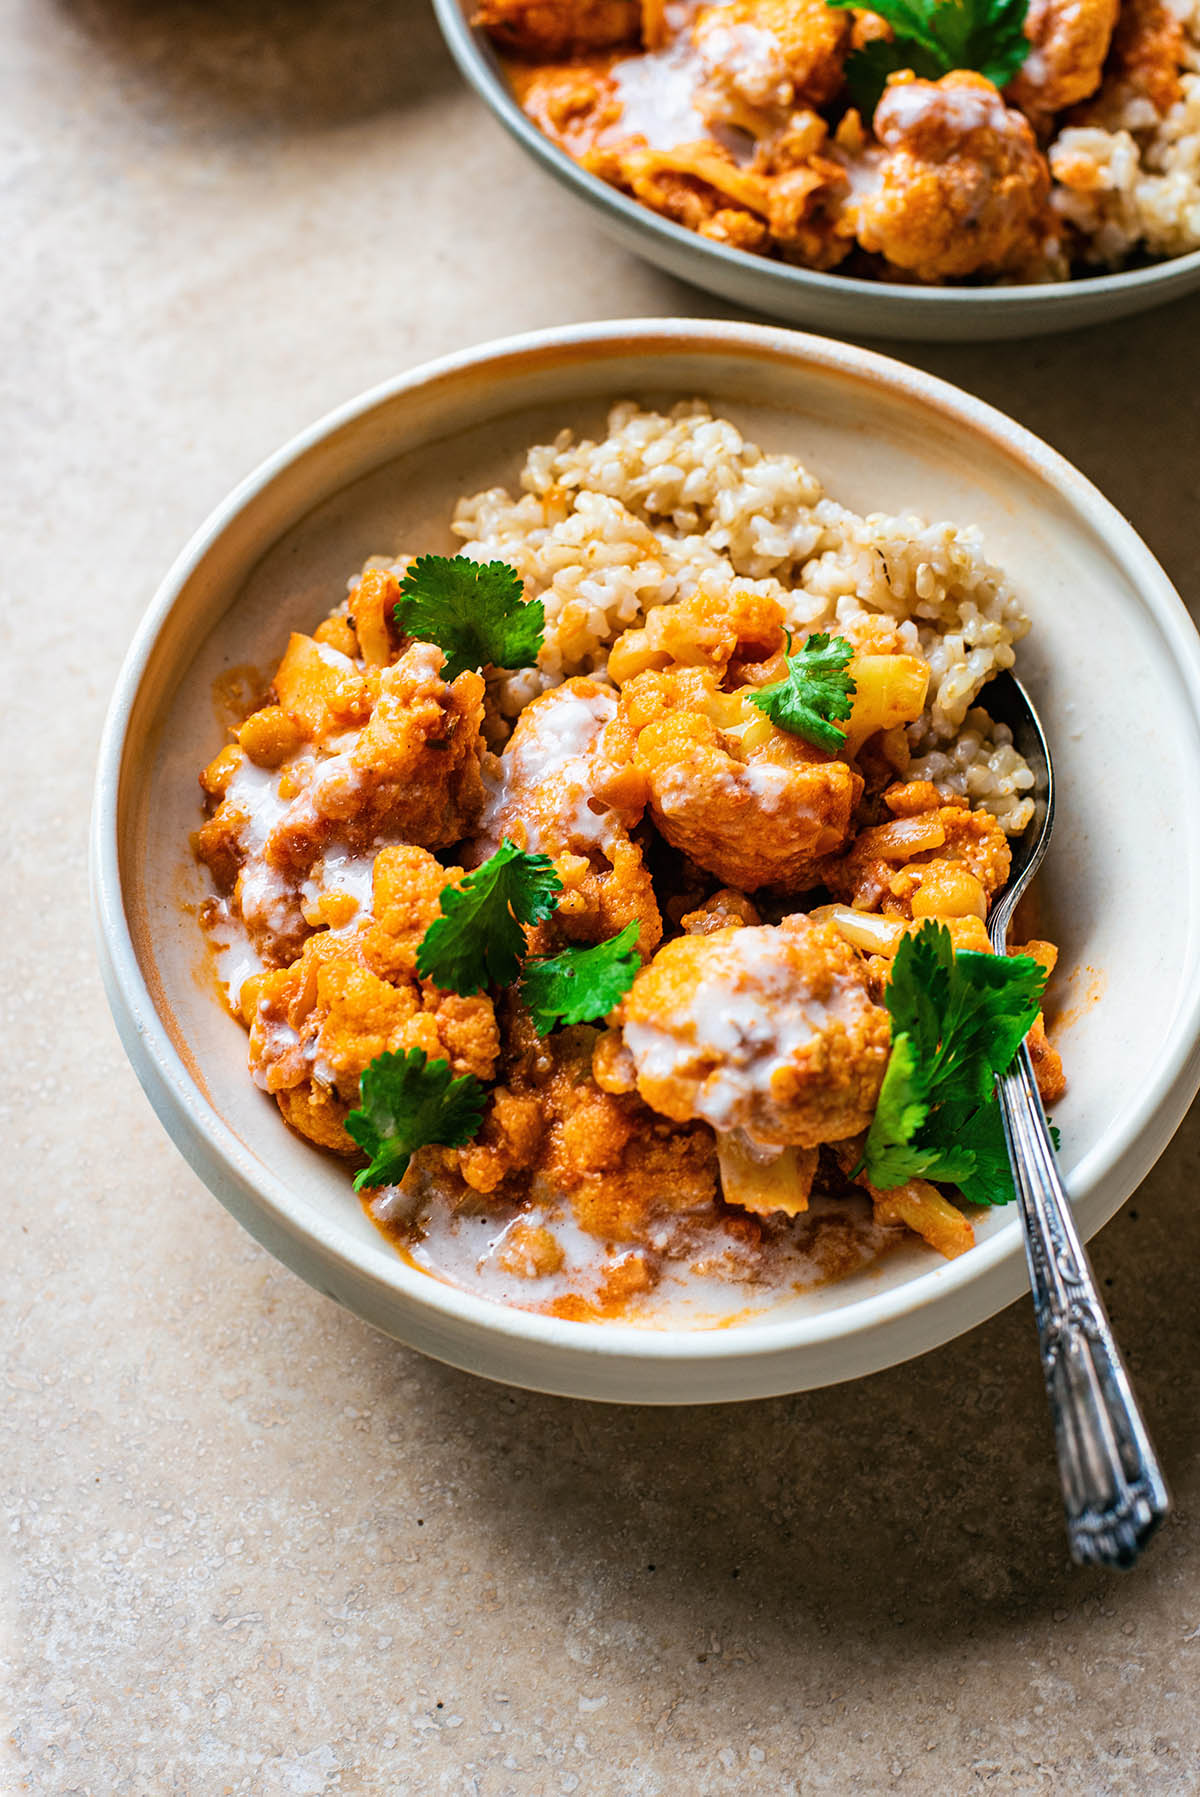 Cauliflower curry in a bowl with cilantro and rice.